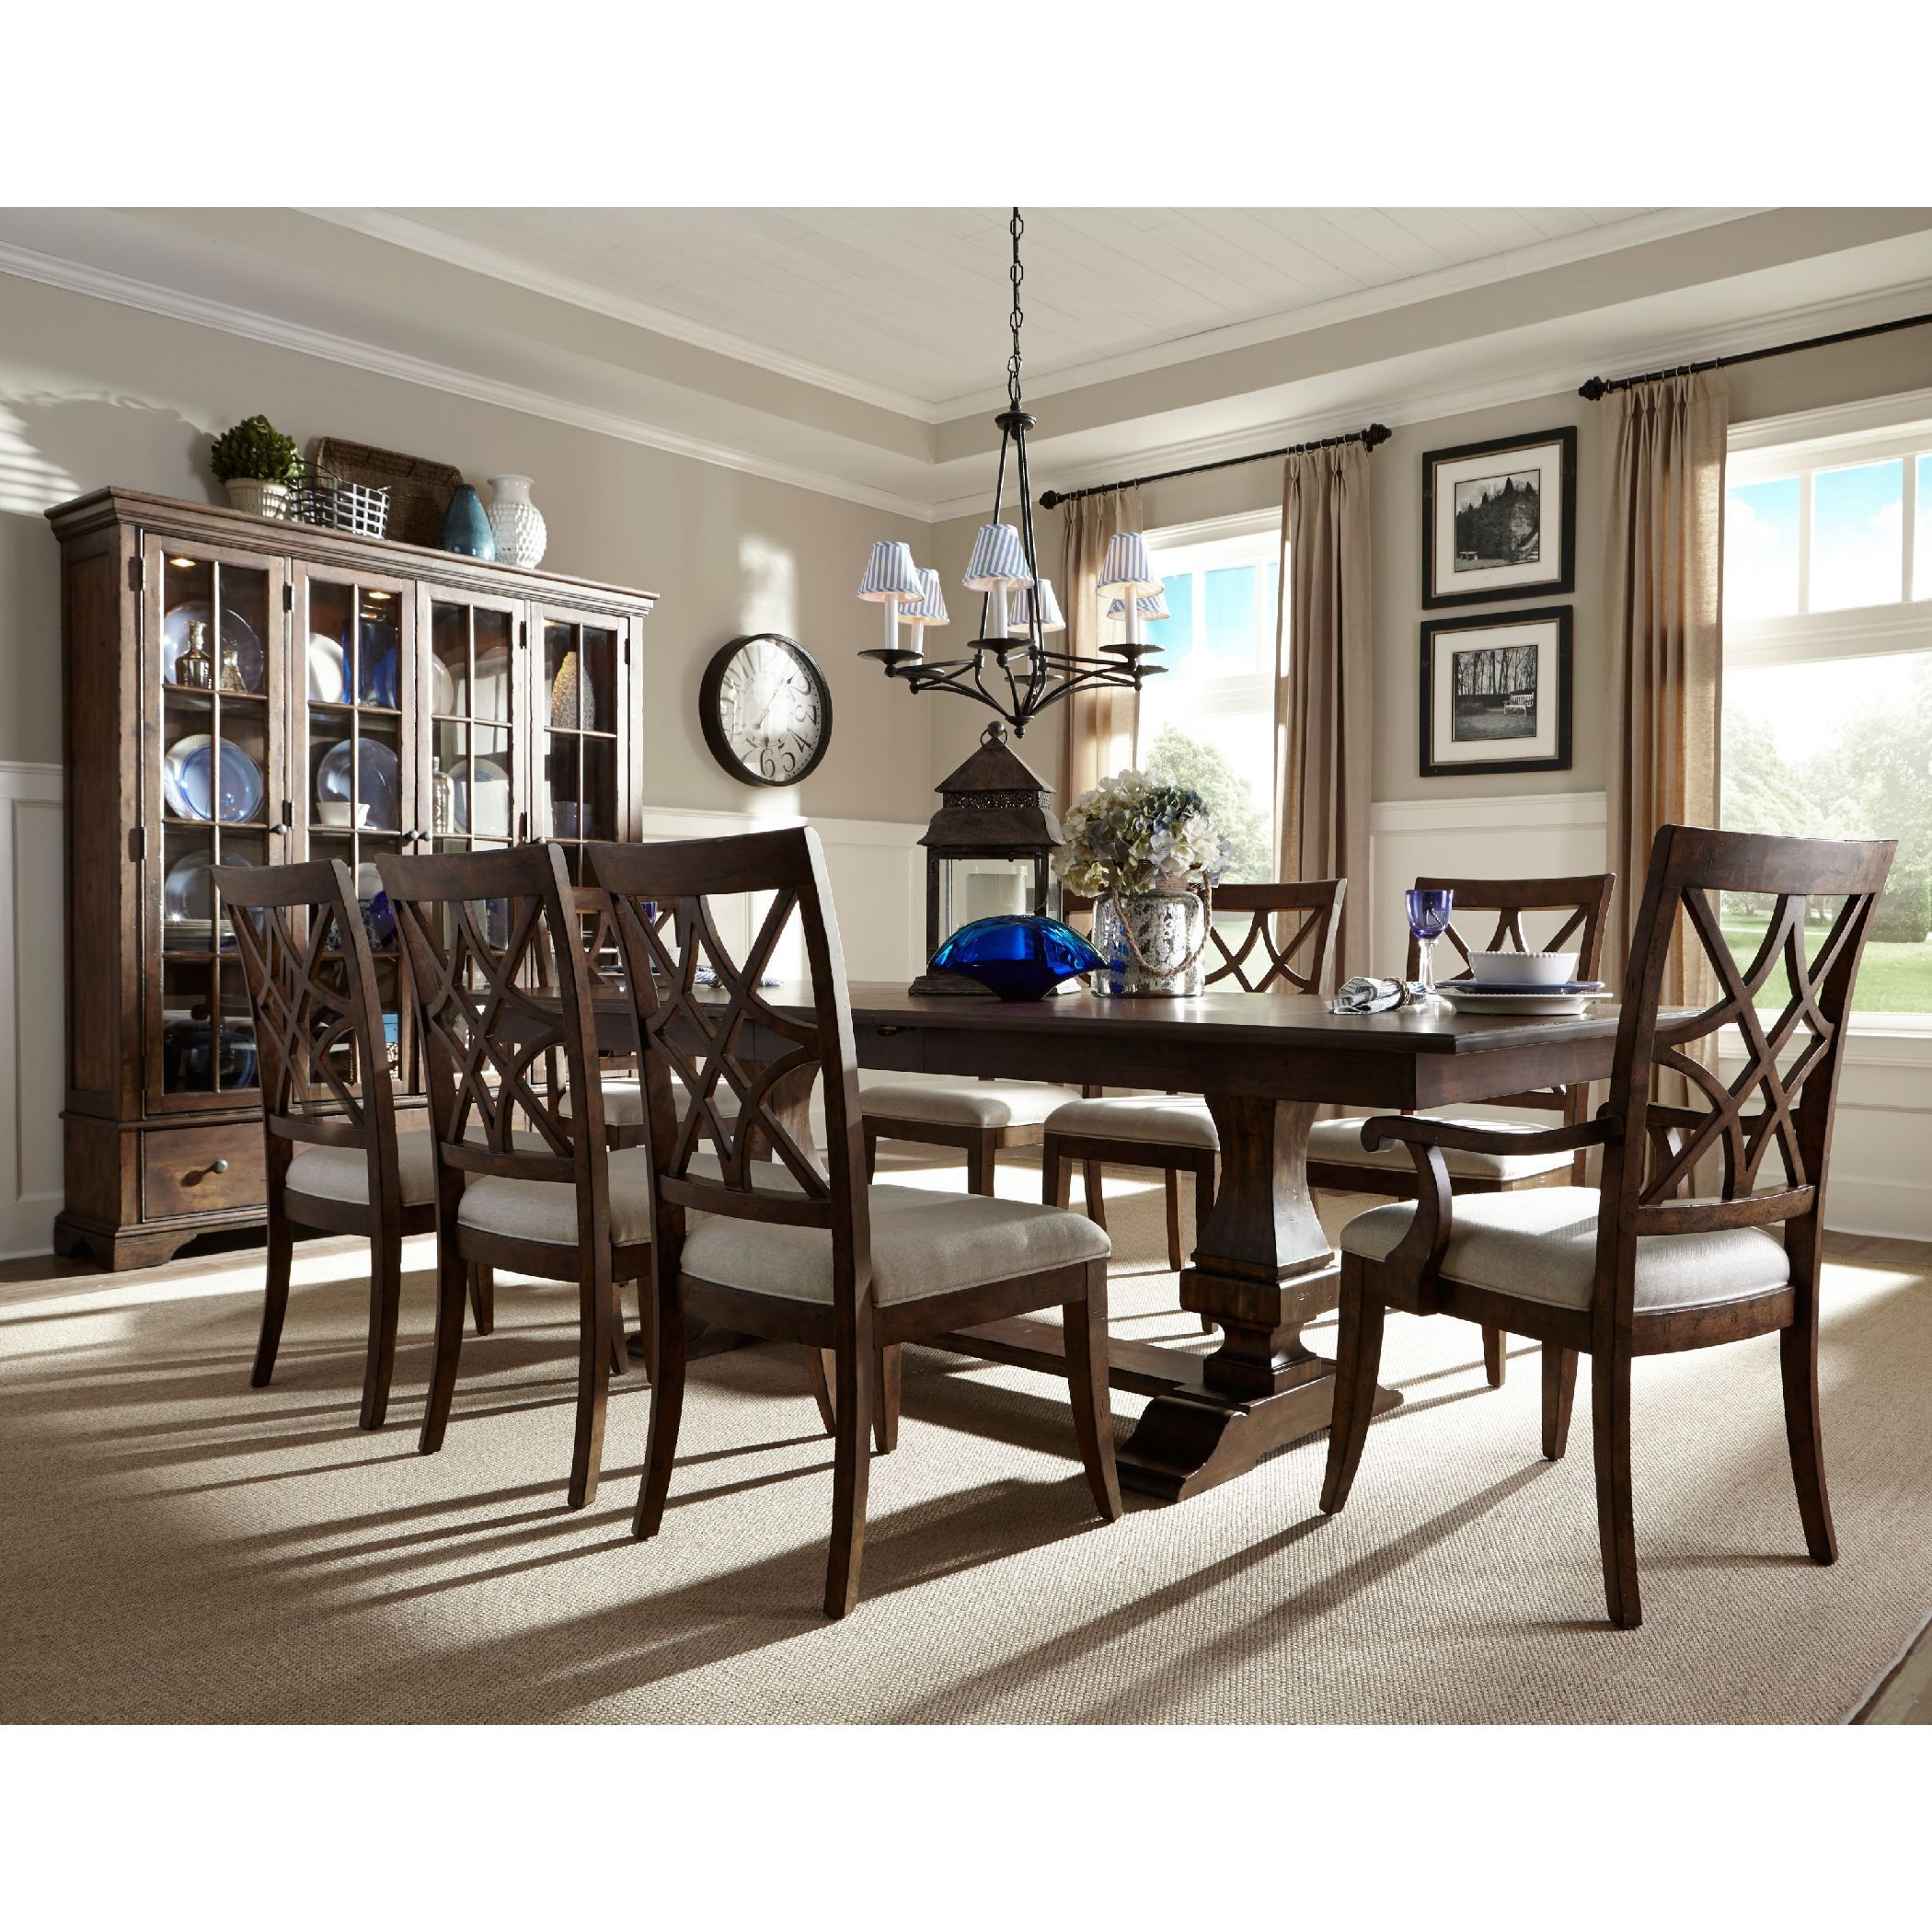 I Just Love The Trisha Yearwood Collection Especially This Dining Extraordinary Klaussner Dining Room Furniture Decorating Design